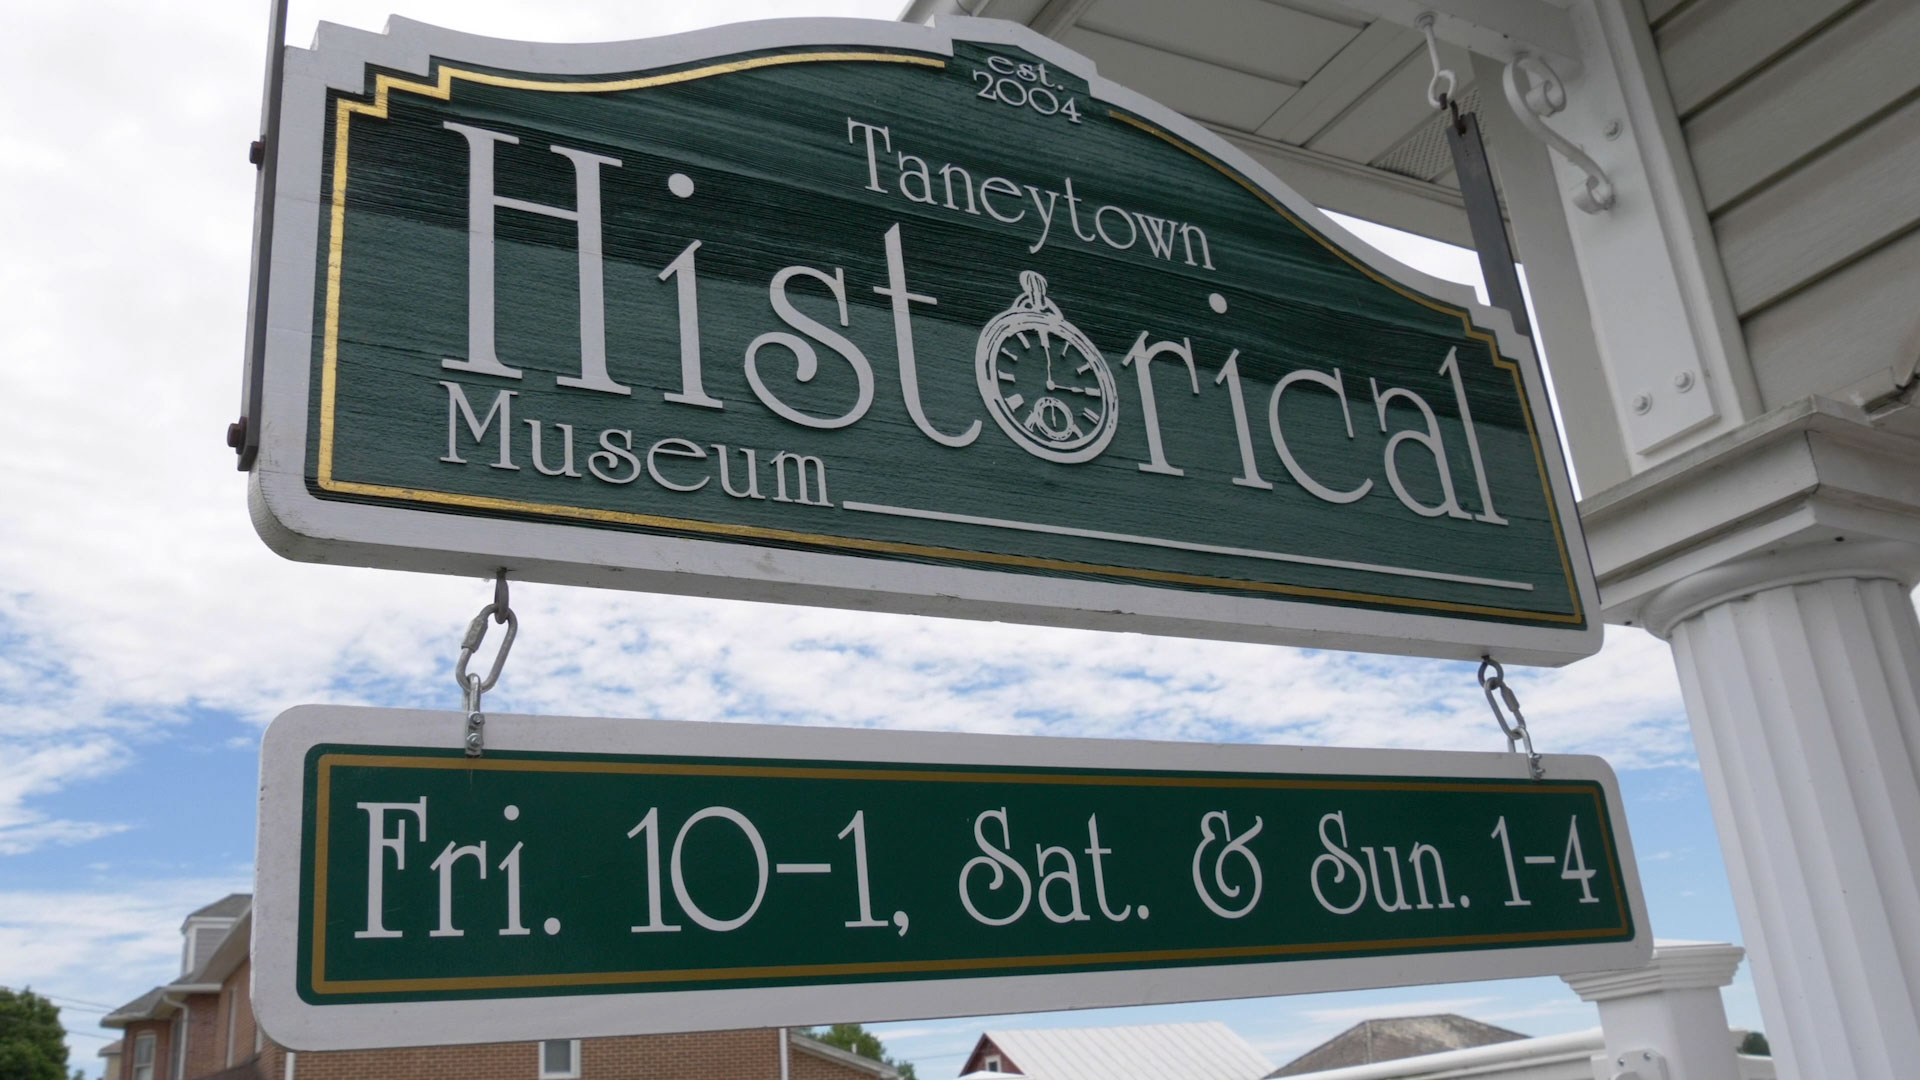 taneytown-historical-museum-hudson-day-2019